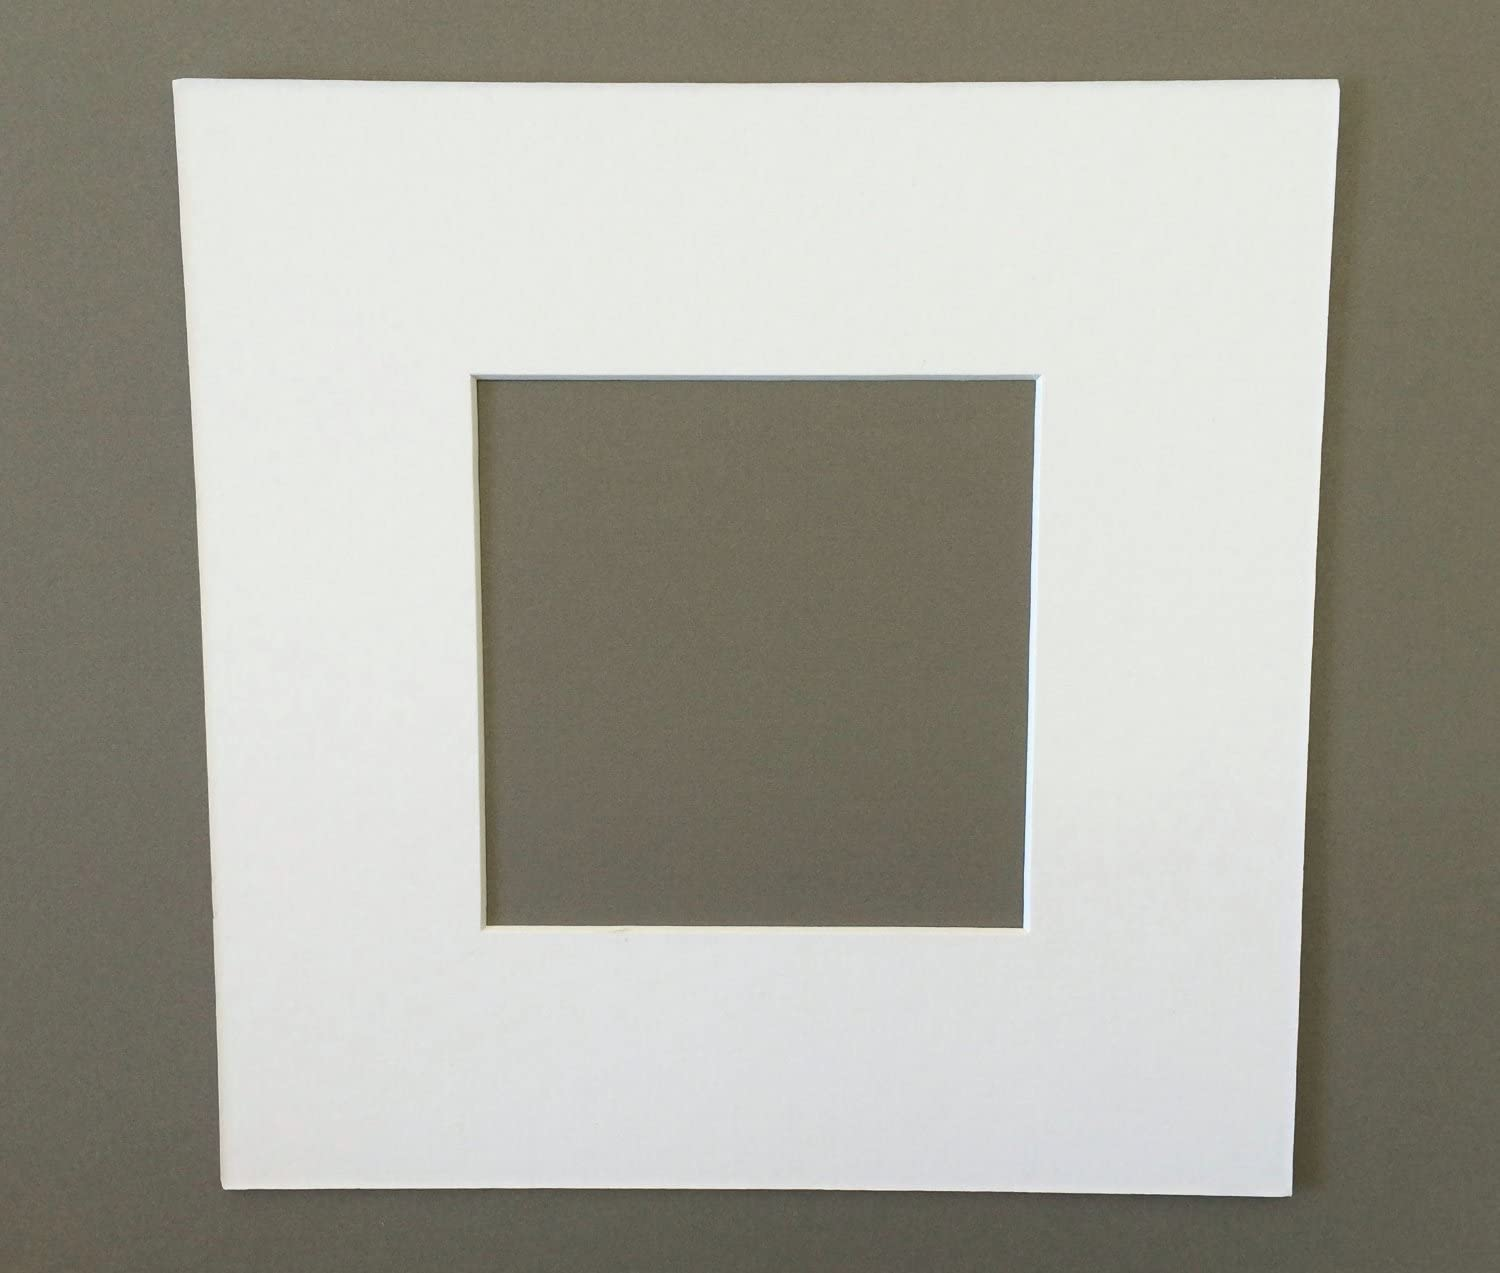 16x16 Square White Picture Mats with White Core Bevel Cut for 12x12 Pictures